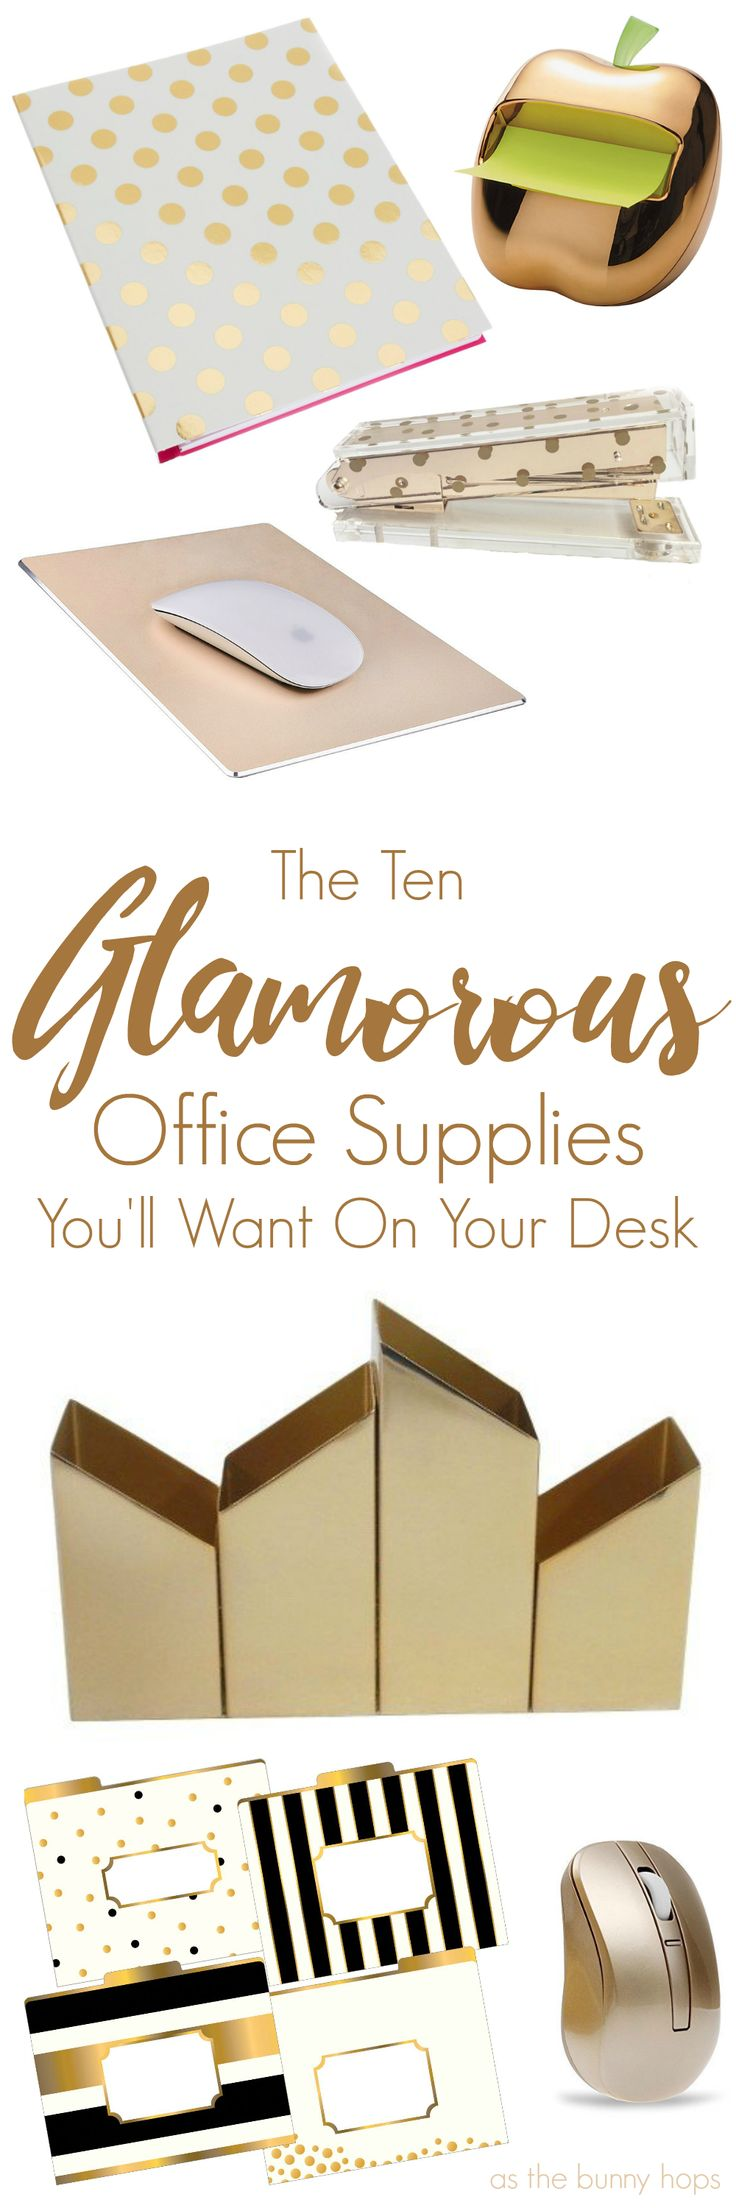 fall office decorating ideas. best 25 work office decorations ideas on pinterest decorating cubicle desk and fall